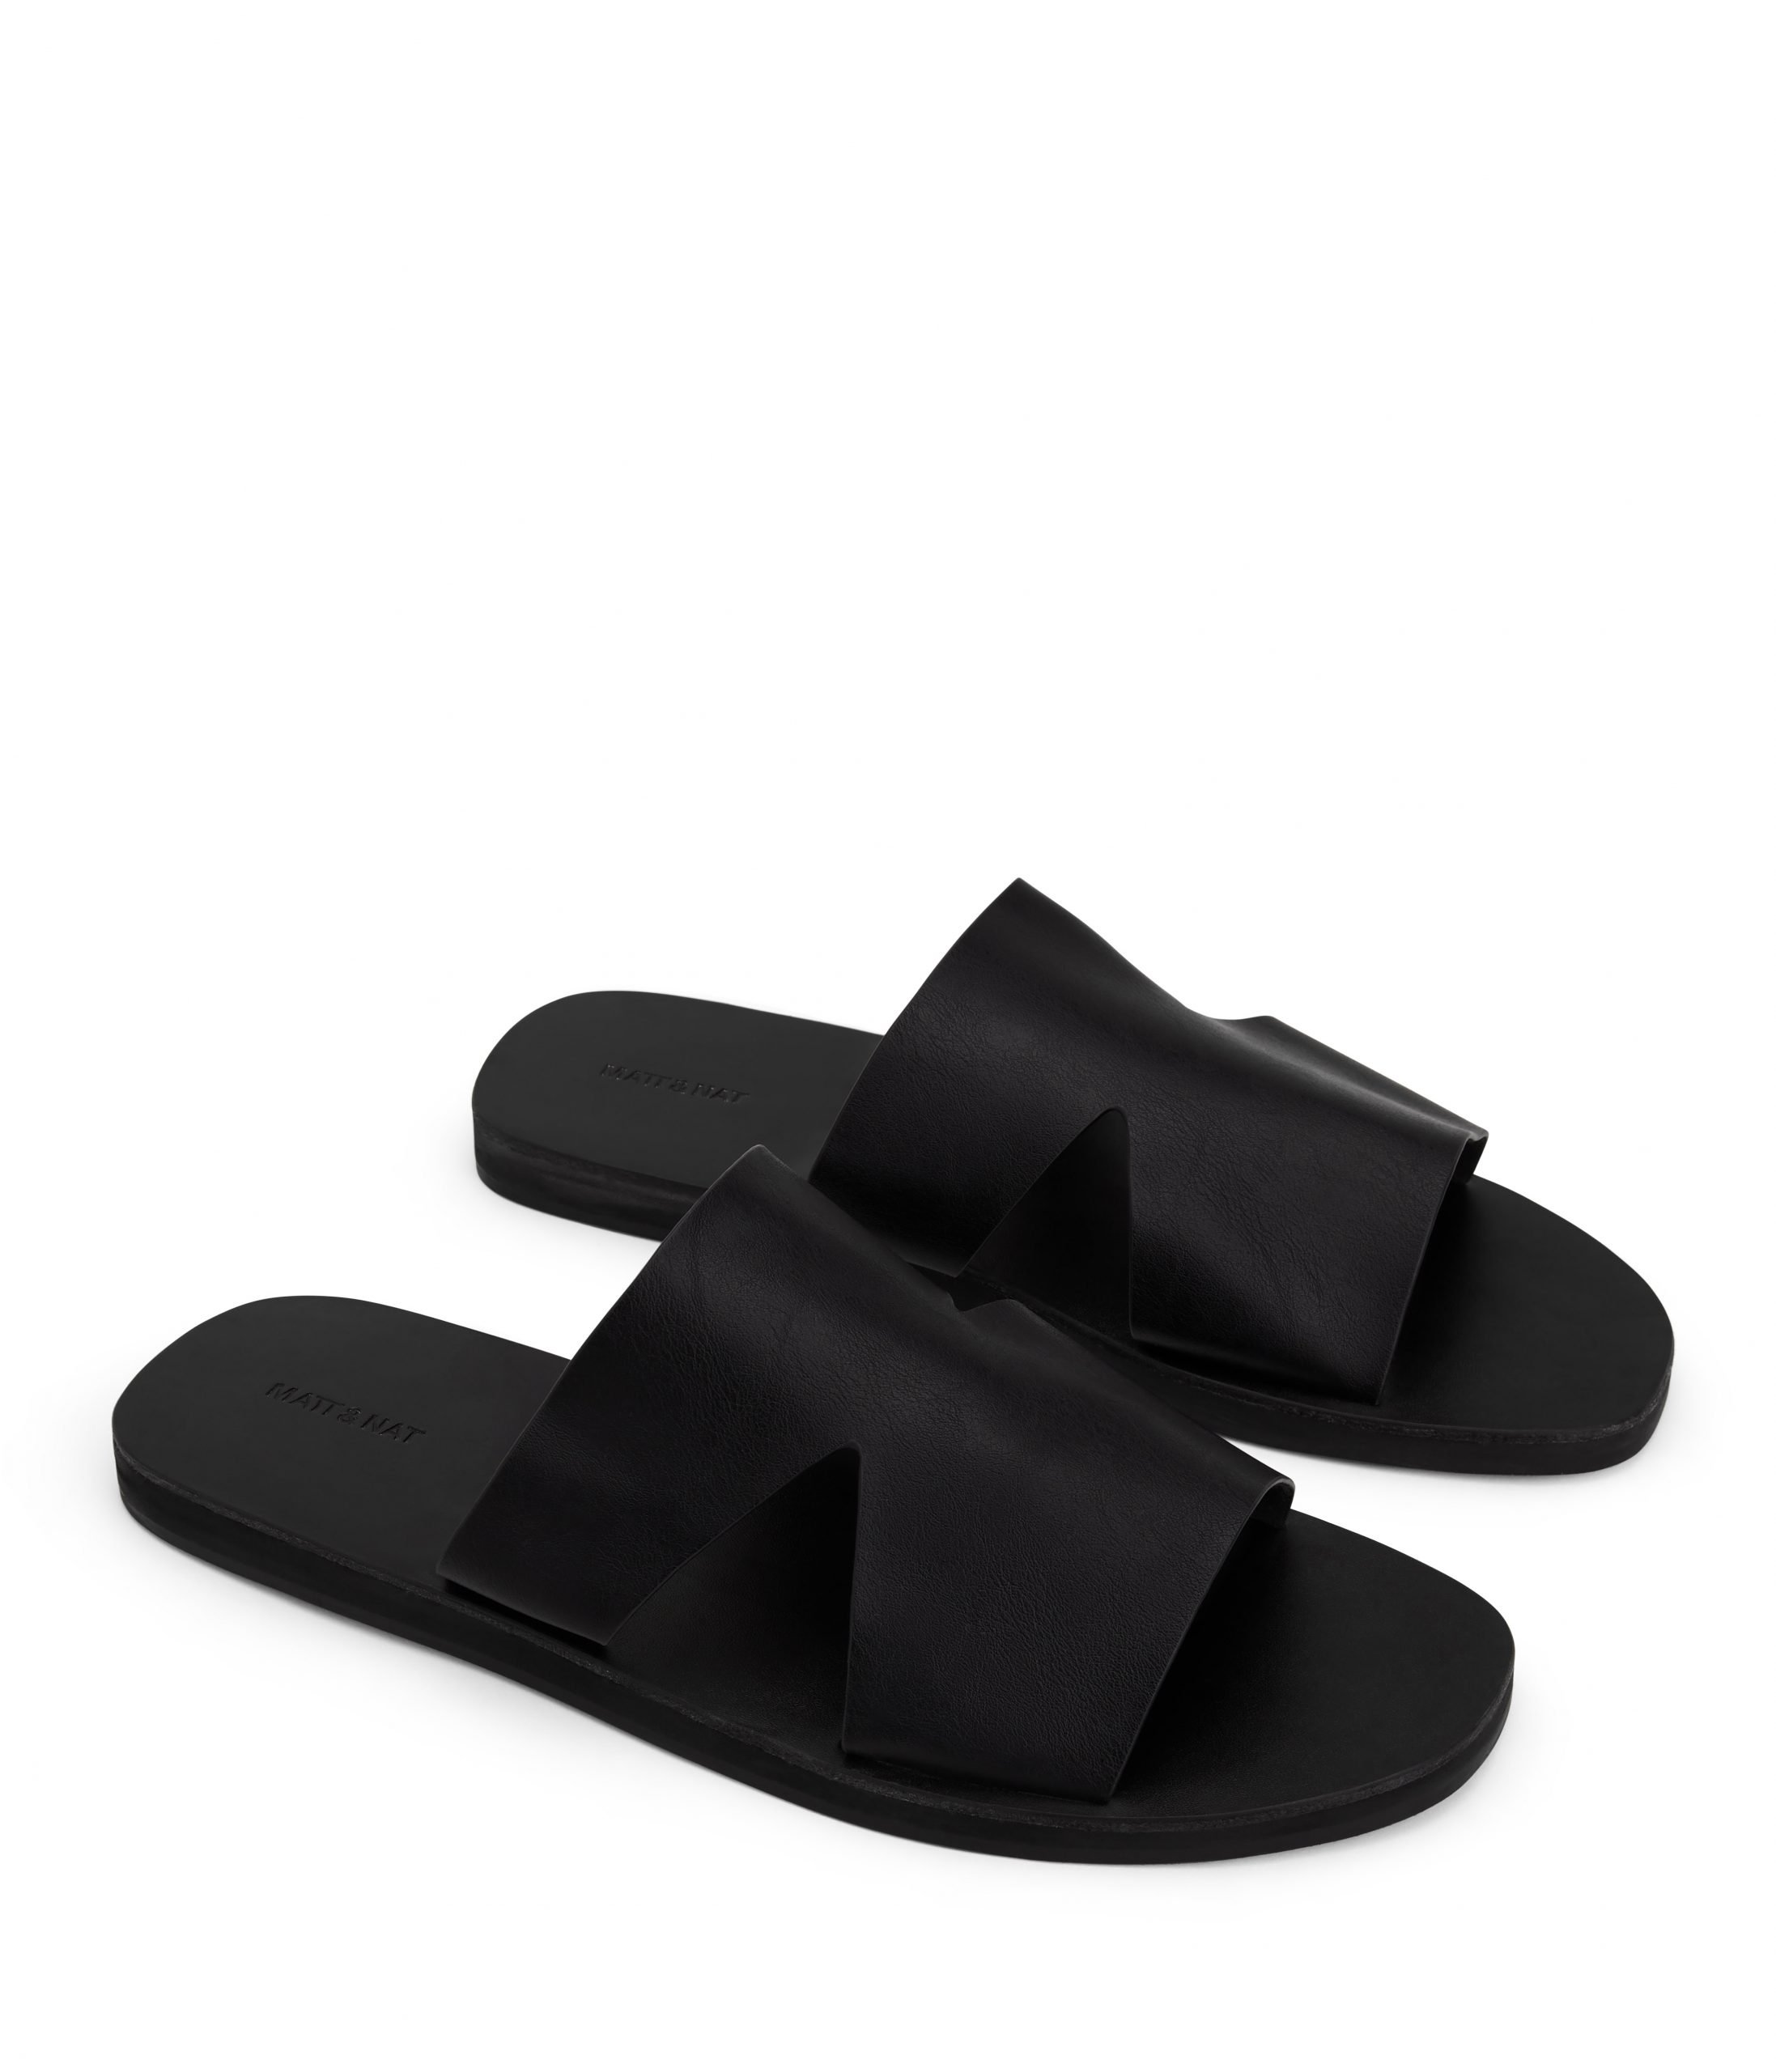 Matt & Natt Levos Slip On Sandals